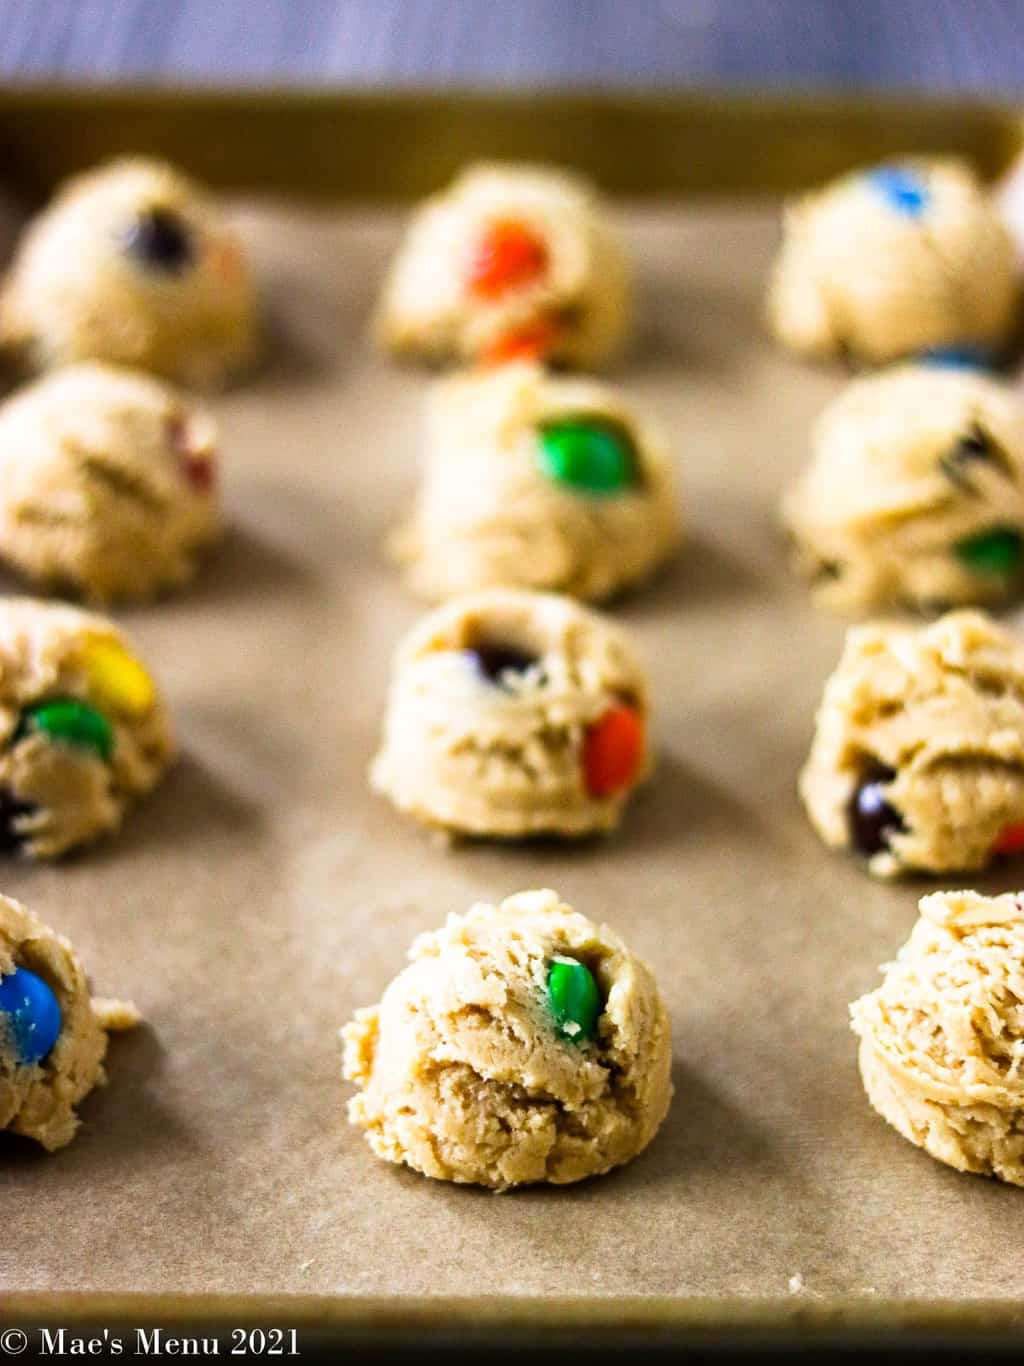 A side shot of scoops of peanut butter M&M cookie dough